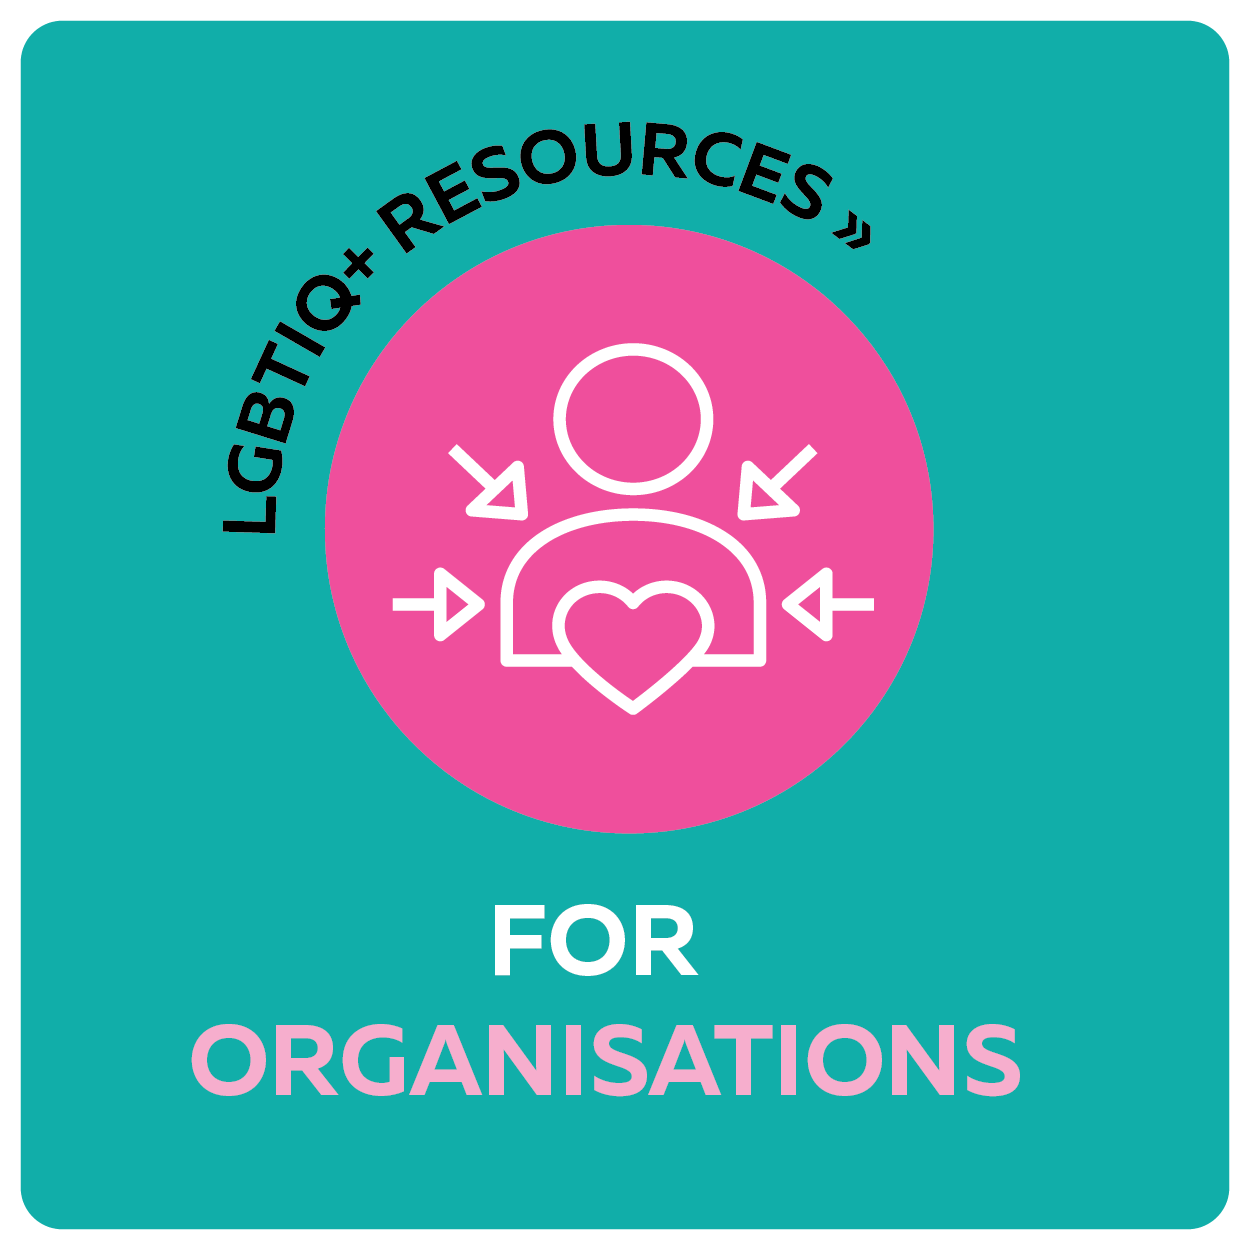 LGBTIQ+ resources for organisations